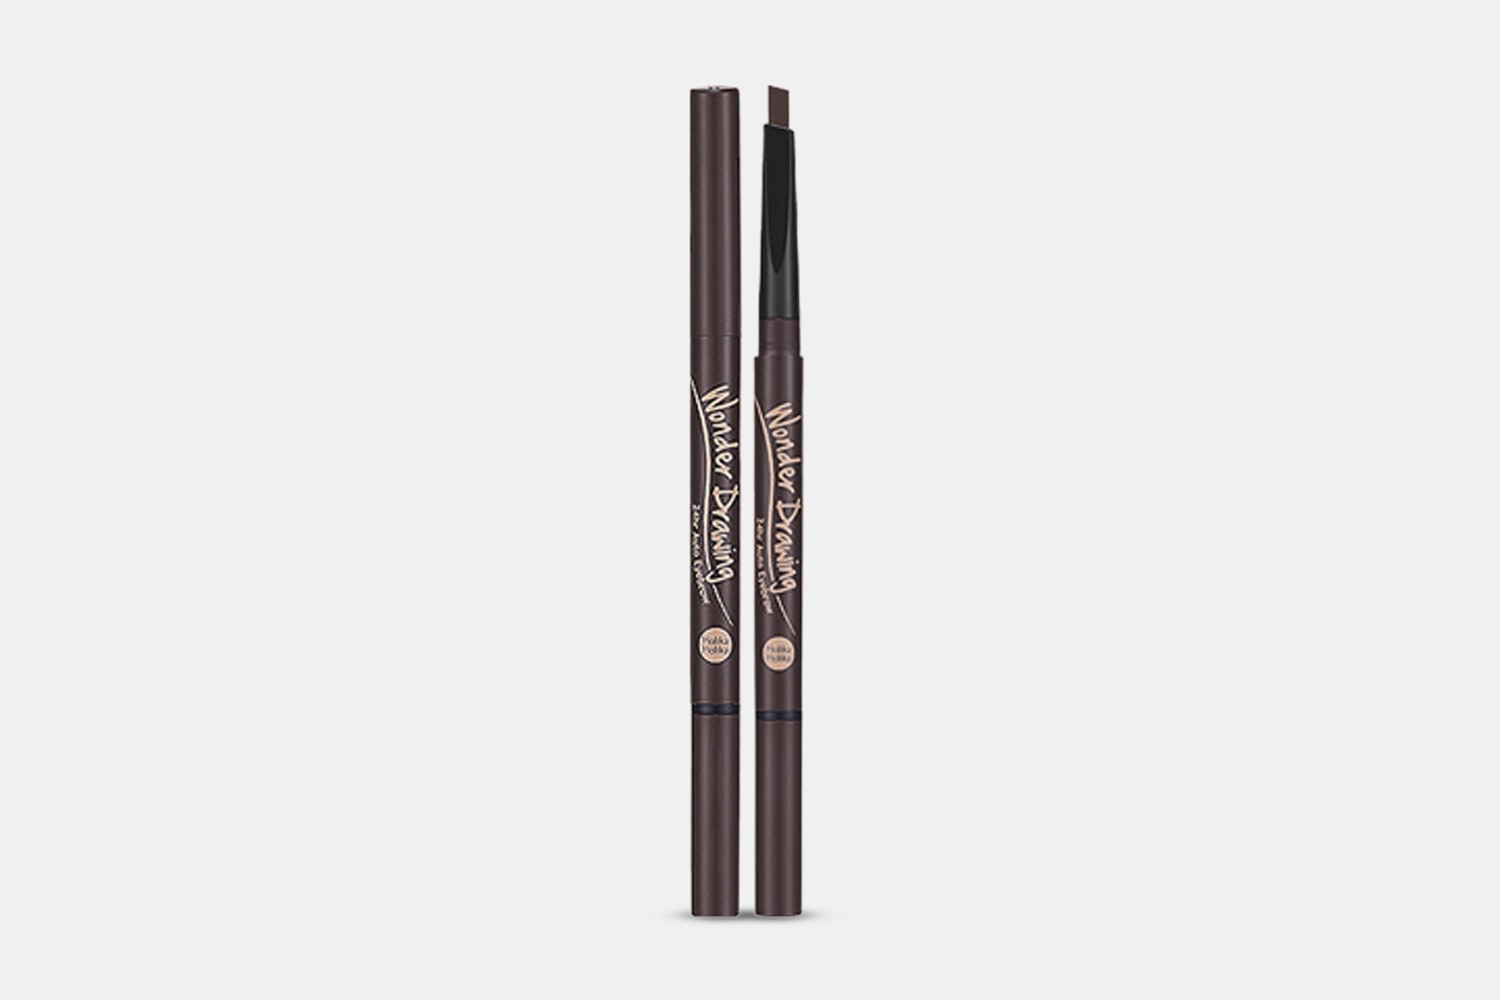 Holika Holika Wonder Drawing 24-Hour Eyebrow Pencil